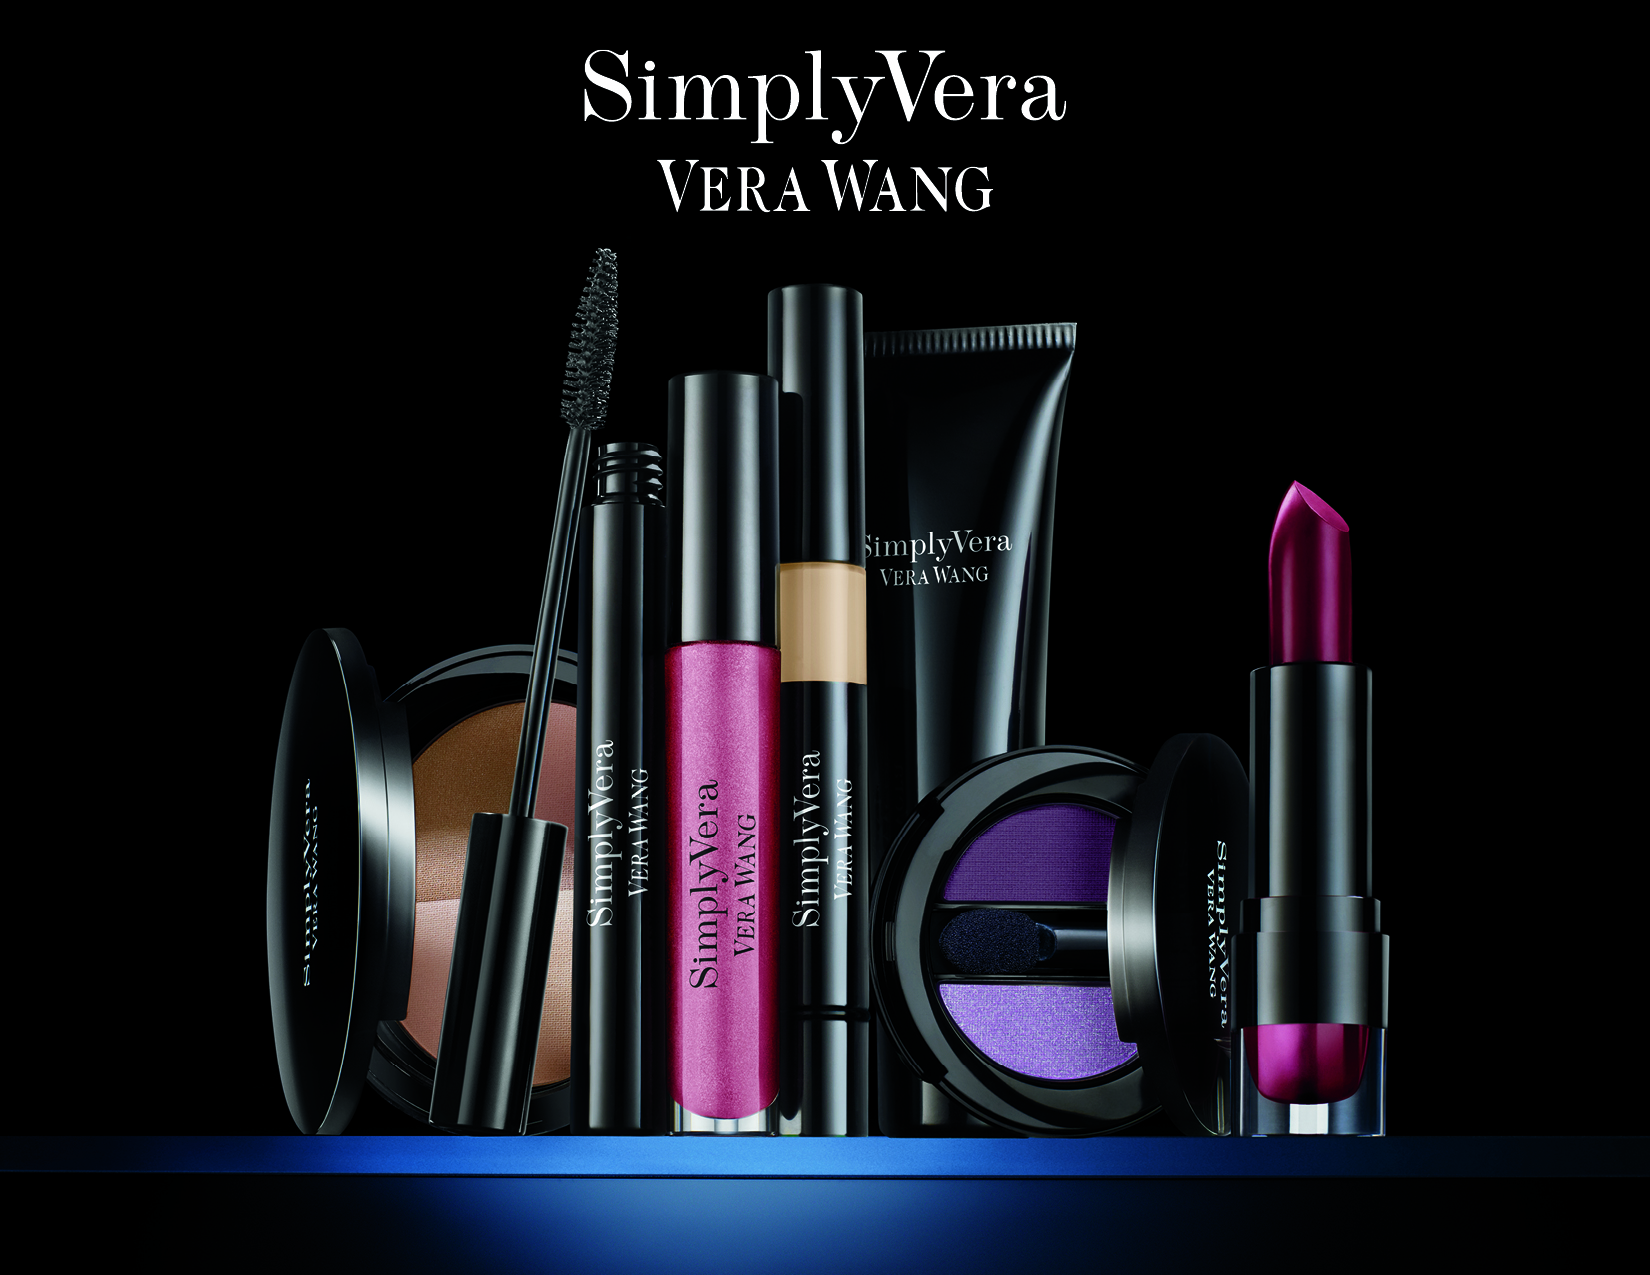 Introducing the Simply Vera Vera Wang Cosmetics Collection!